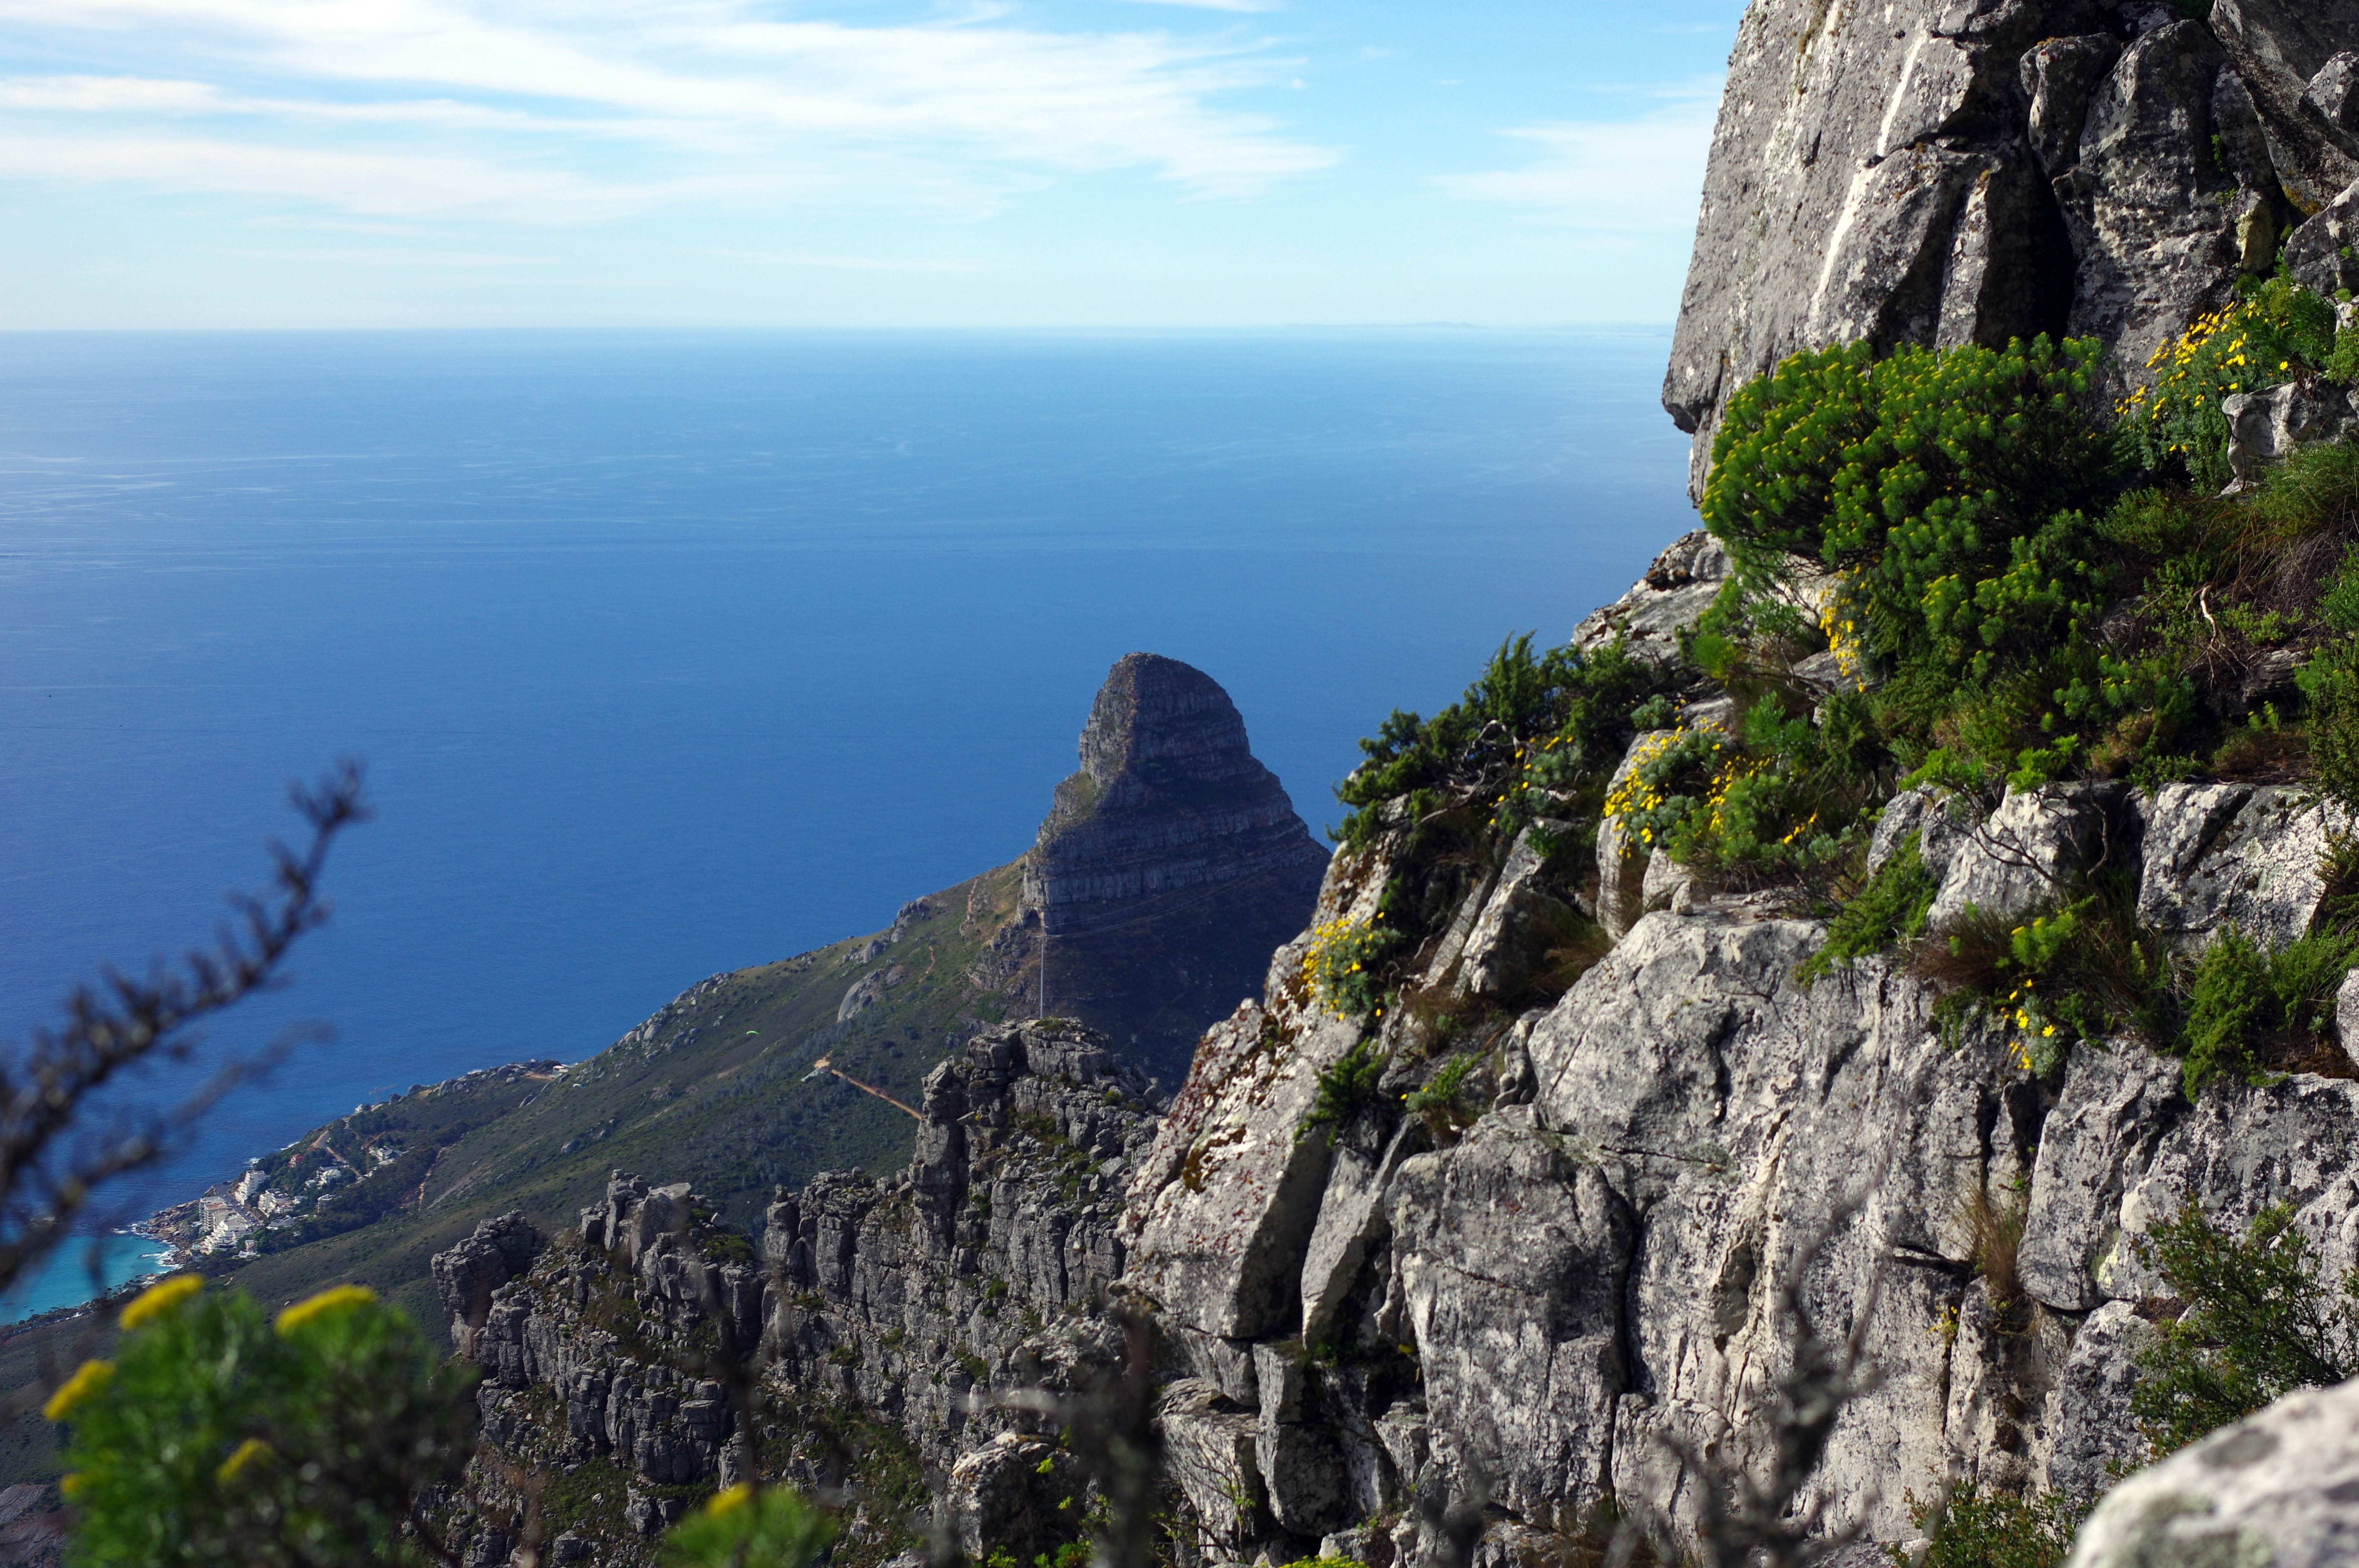 171122_CT_Table mountain10